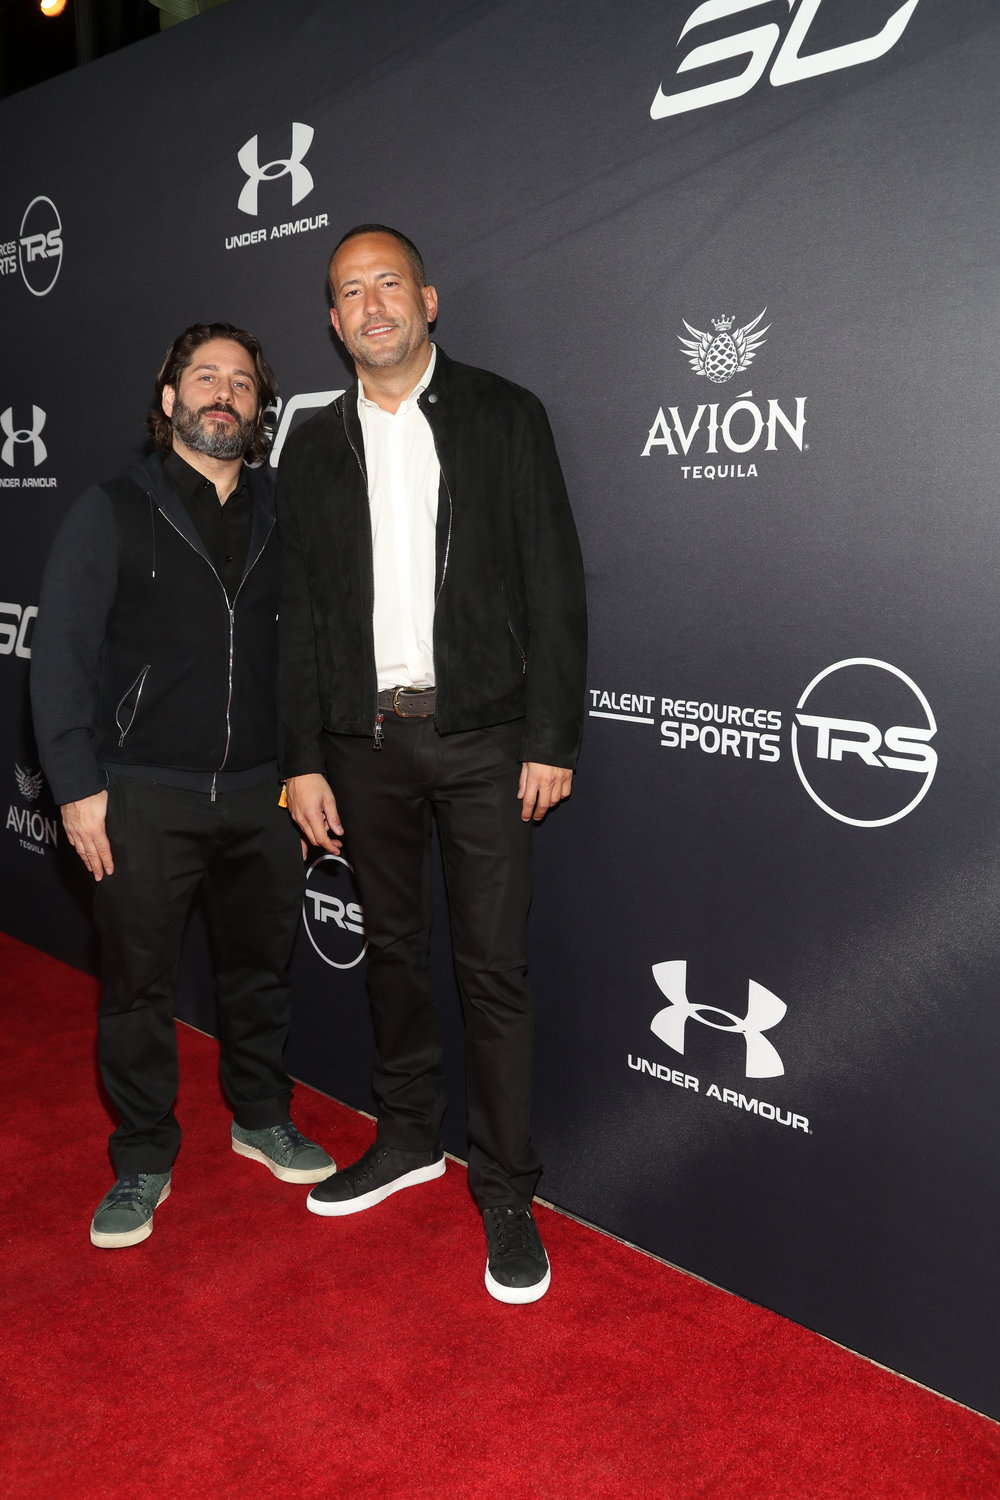 Co-Founders & CEOs of Talent Resources Sports, Michael Heller & David Spencer